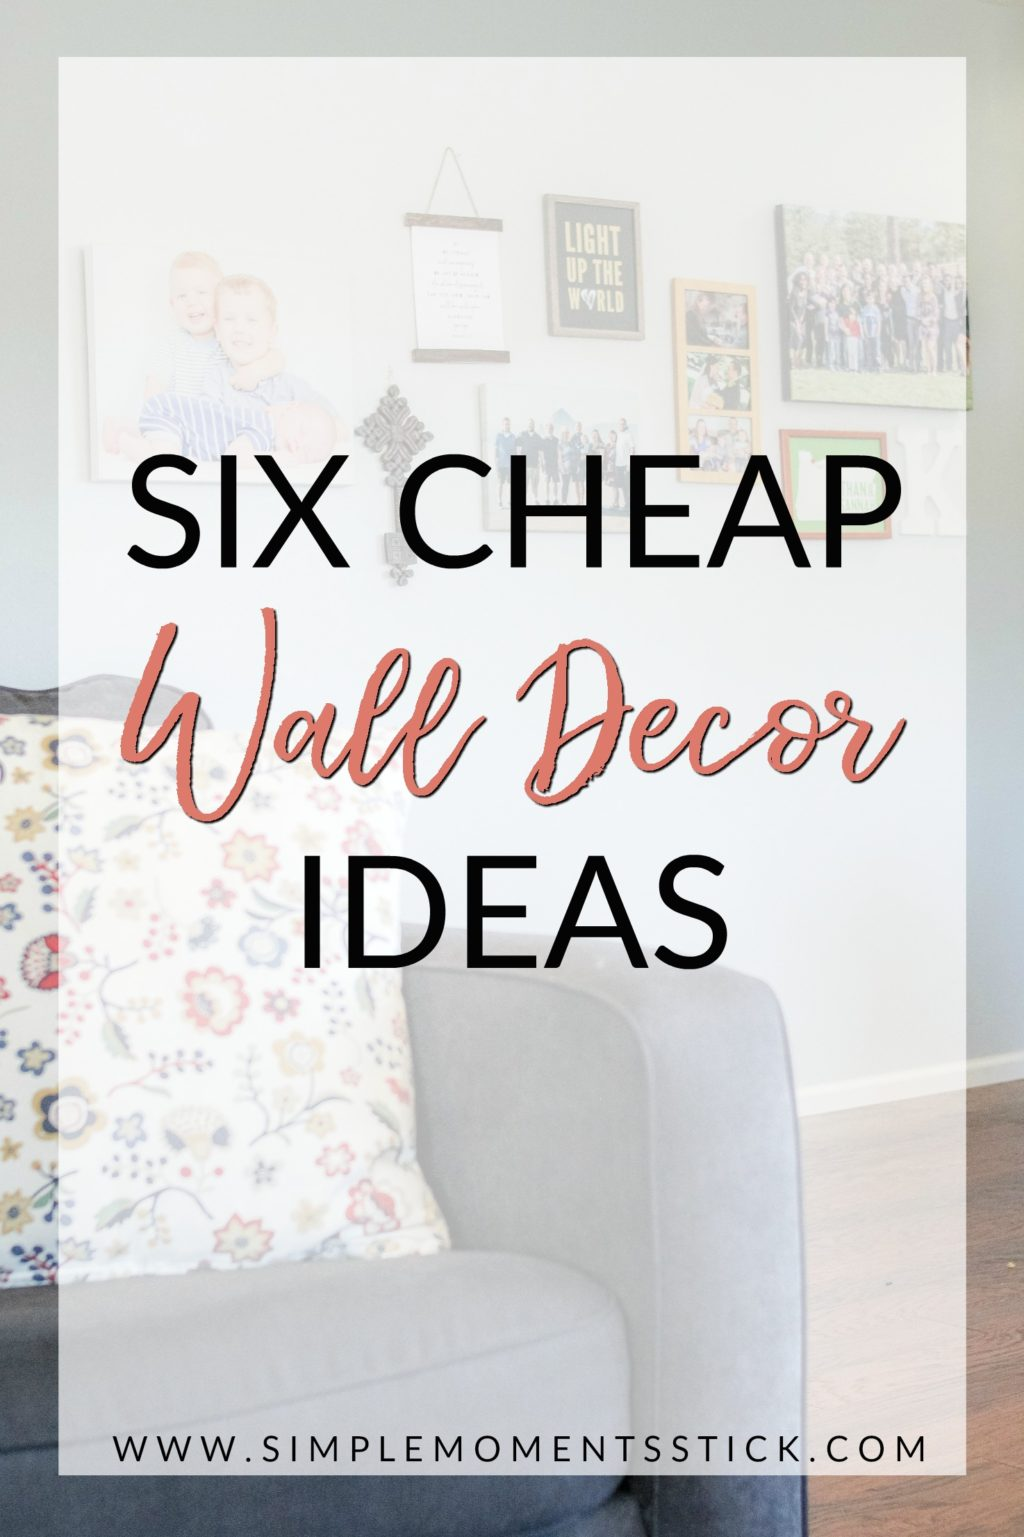 Arm of chair with floral decorative pillow. Gallery wall in focus behind couch. Text overlay - Six Cheap Wall Decor Ideas